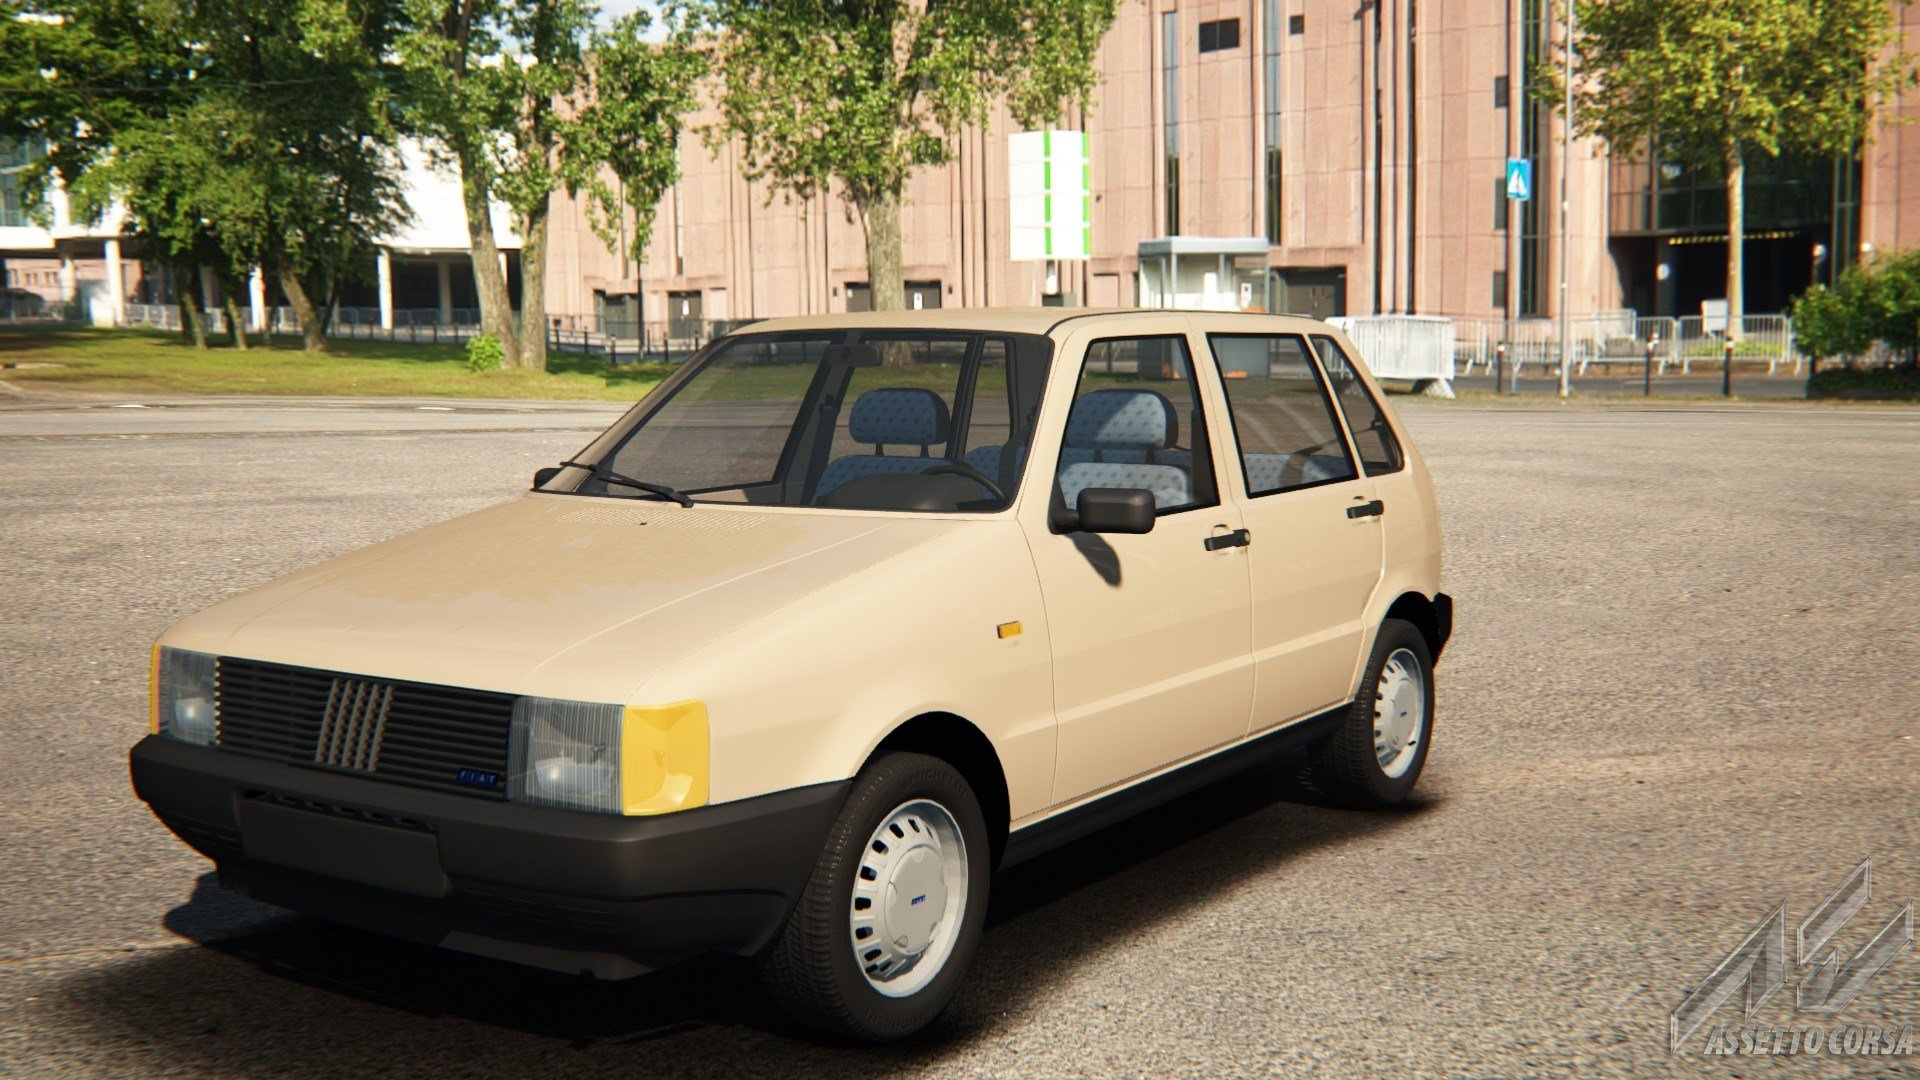 New Fiat Uno Fiat Car Detail Assetto Corsa Database On This Month